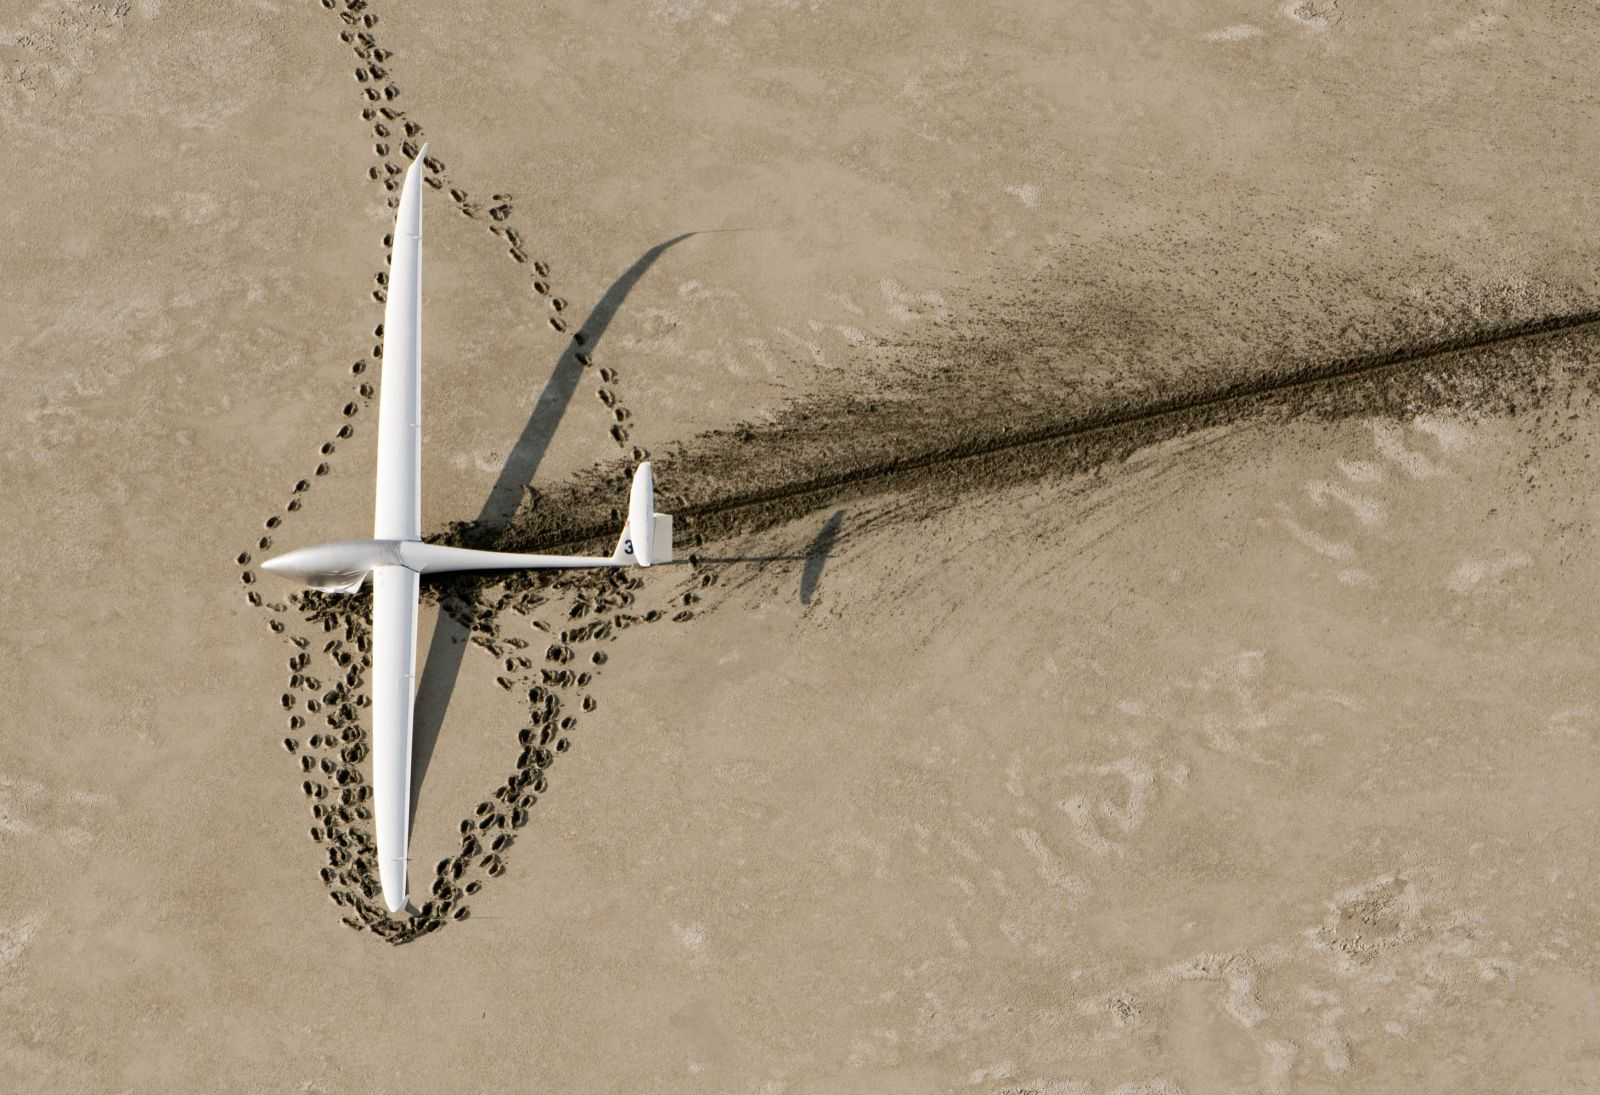 Glider that landed in a dry lake bed